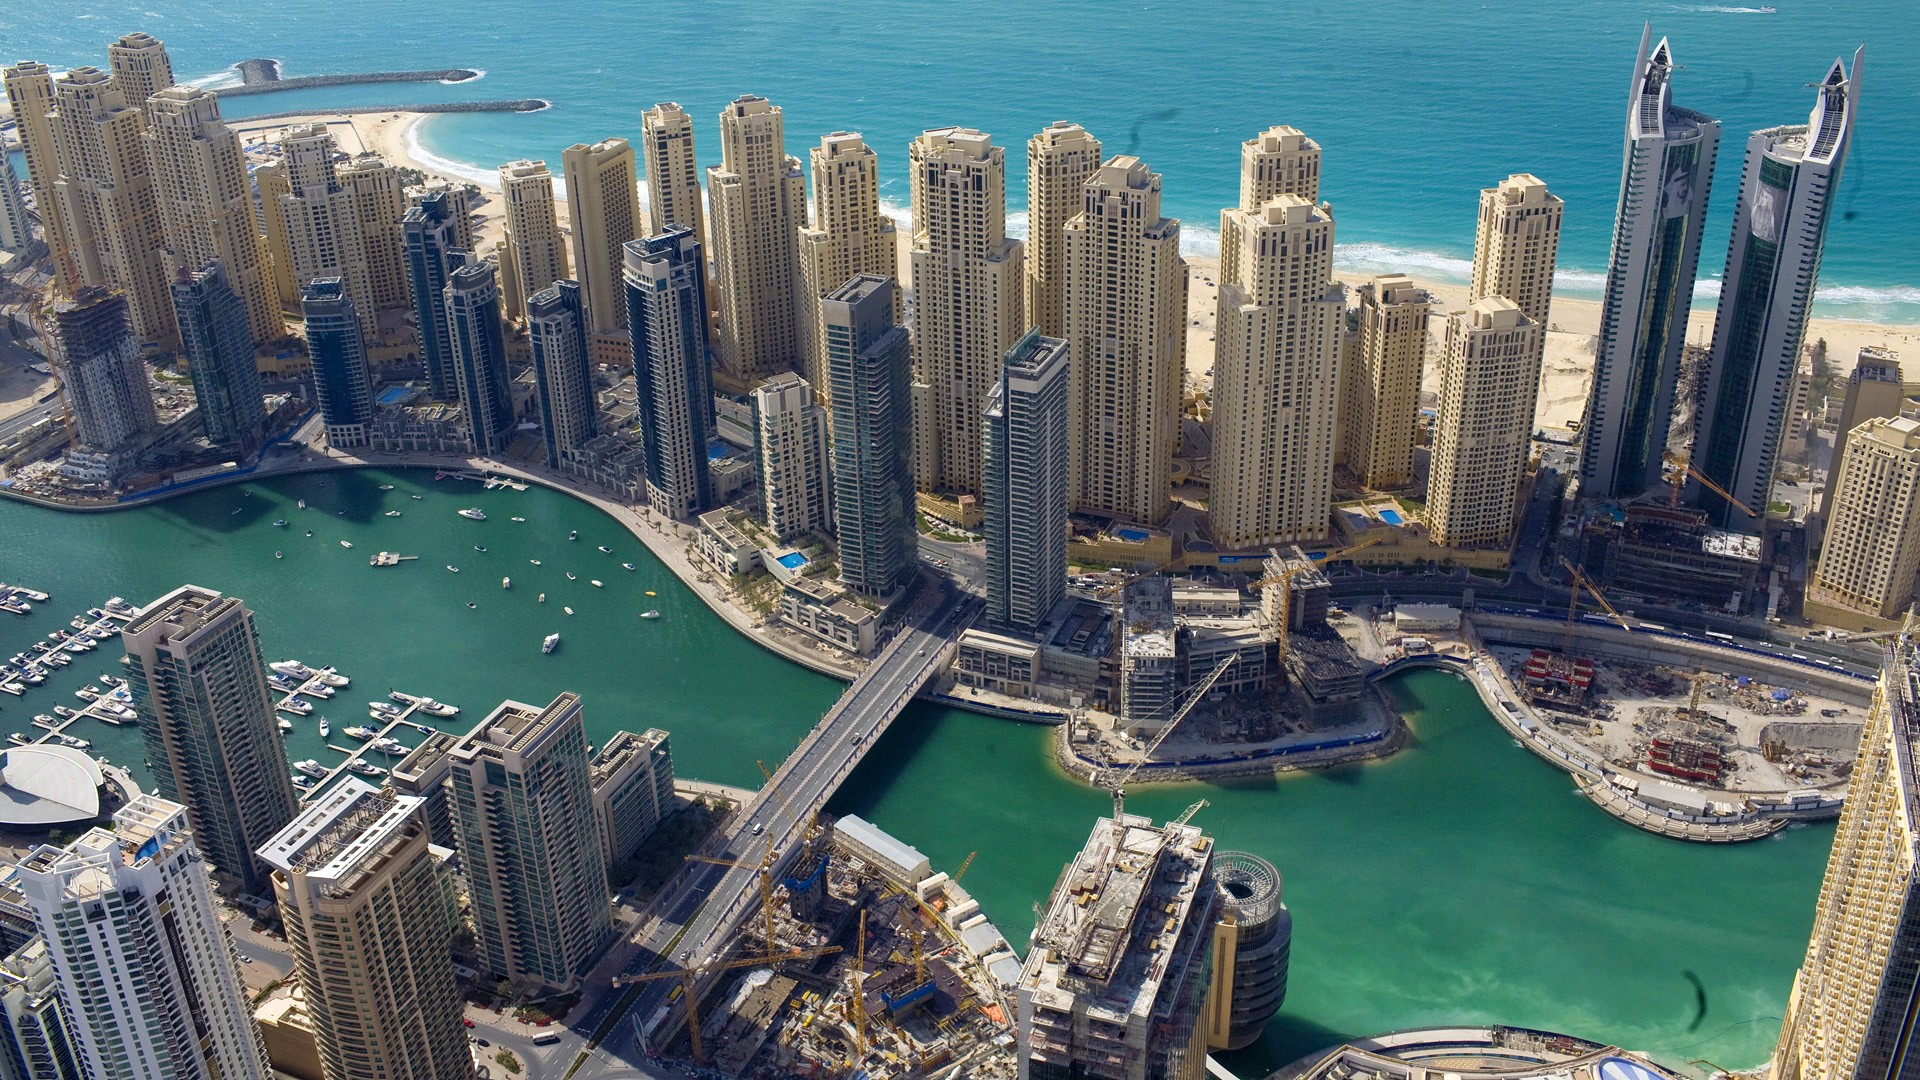 Democratizing Tourism in Dubai